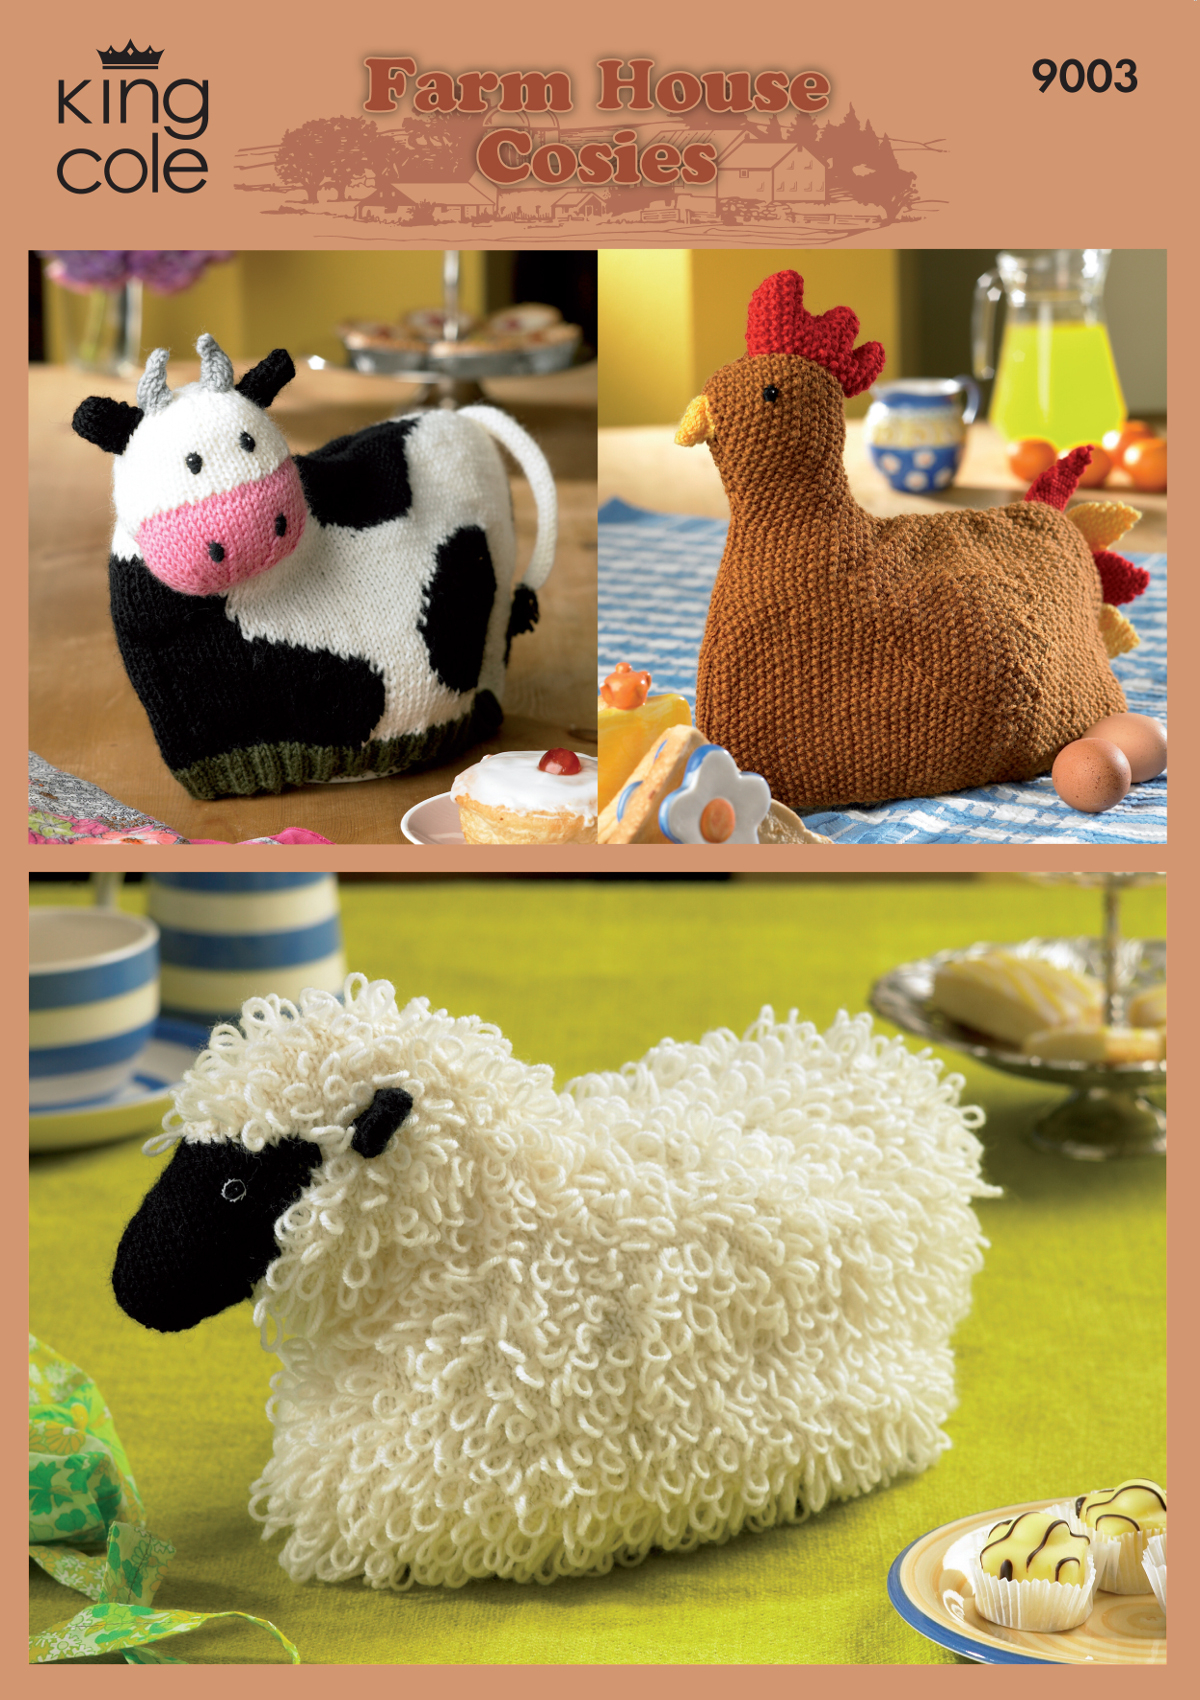 Knitted Hen Pattern Details About King Cole Double Knitting Pattern Cow Hen Sheep Teapot Warmer Tea Cosies 9003